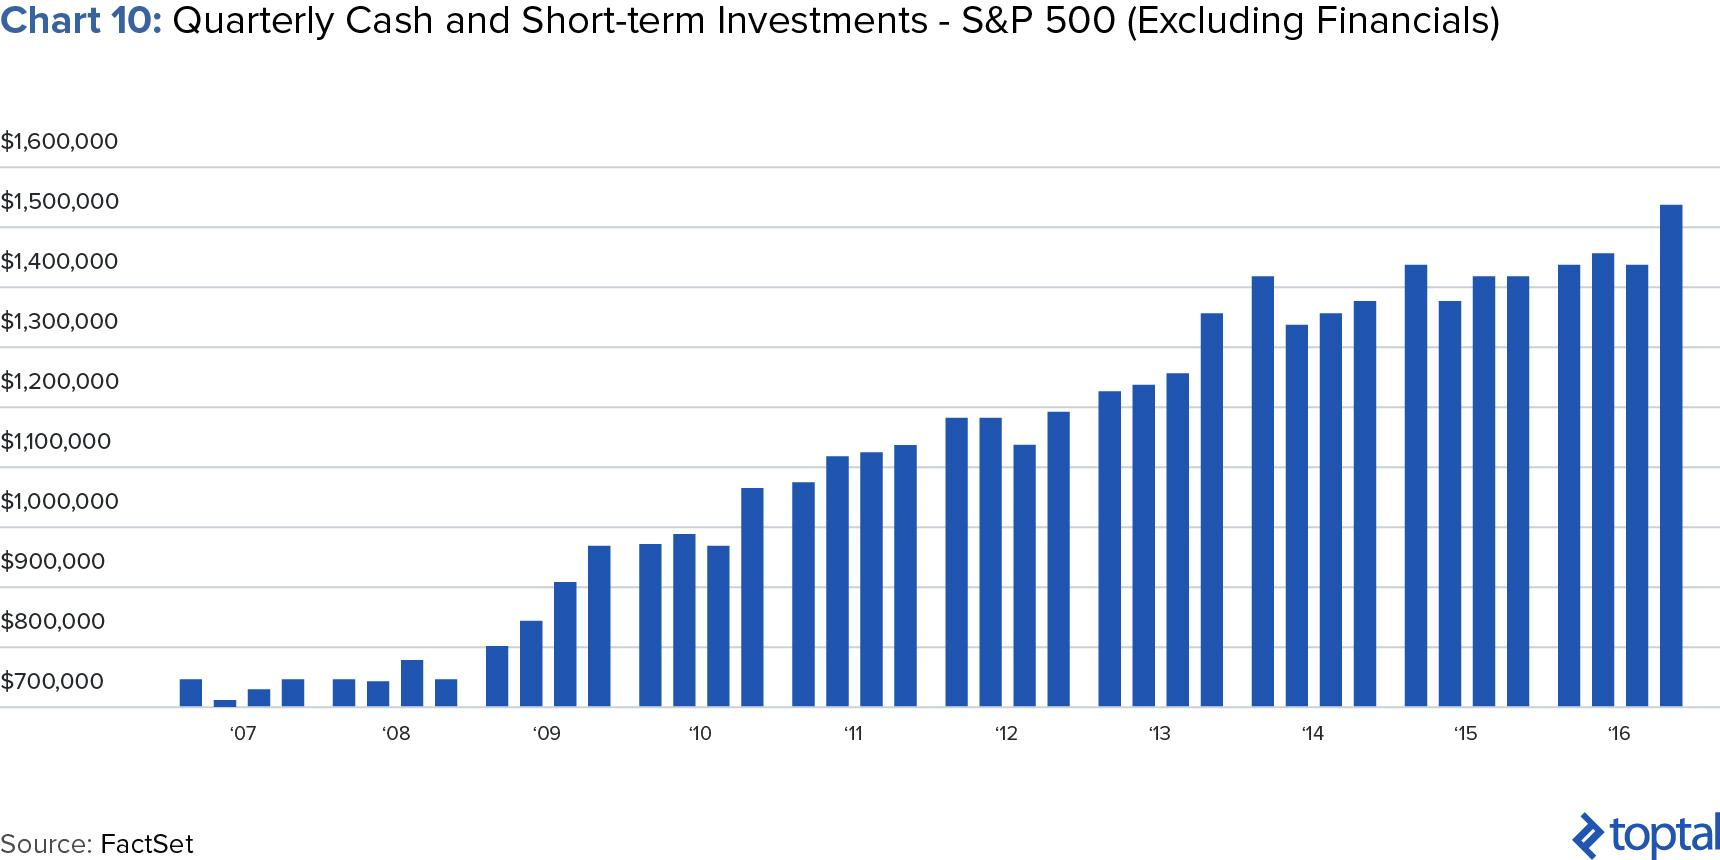 Chart 10: Quarterly Cash and Short-term Investments - S&P 500 (Excluding Financials)